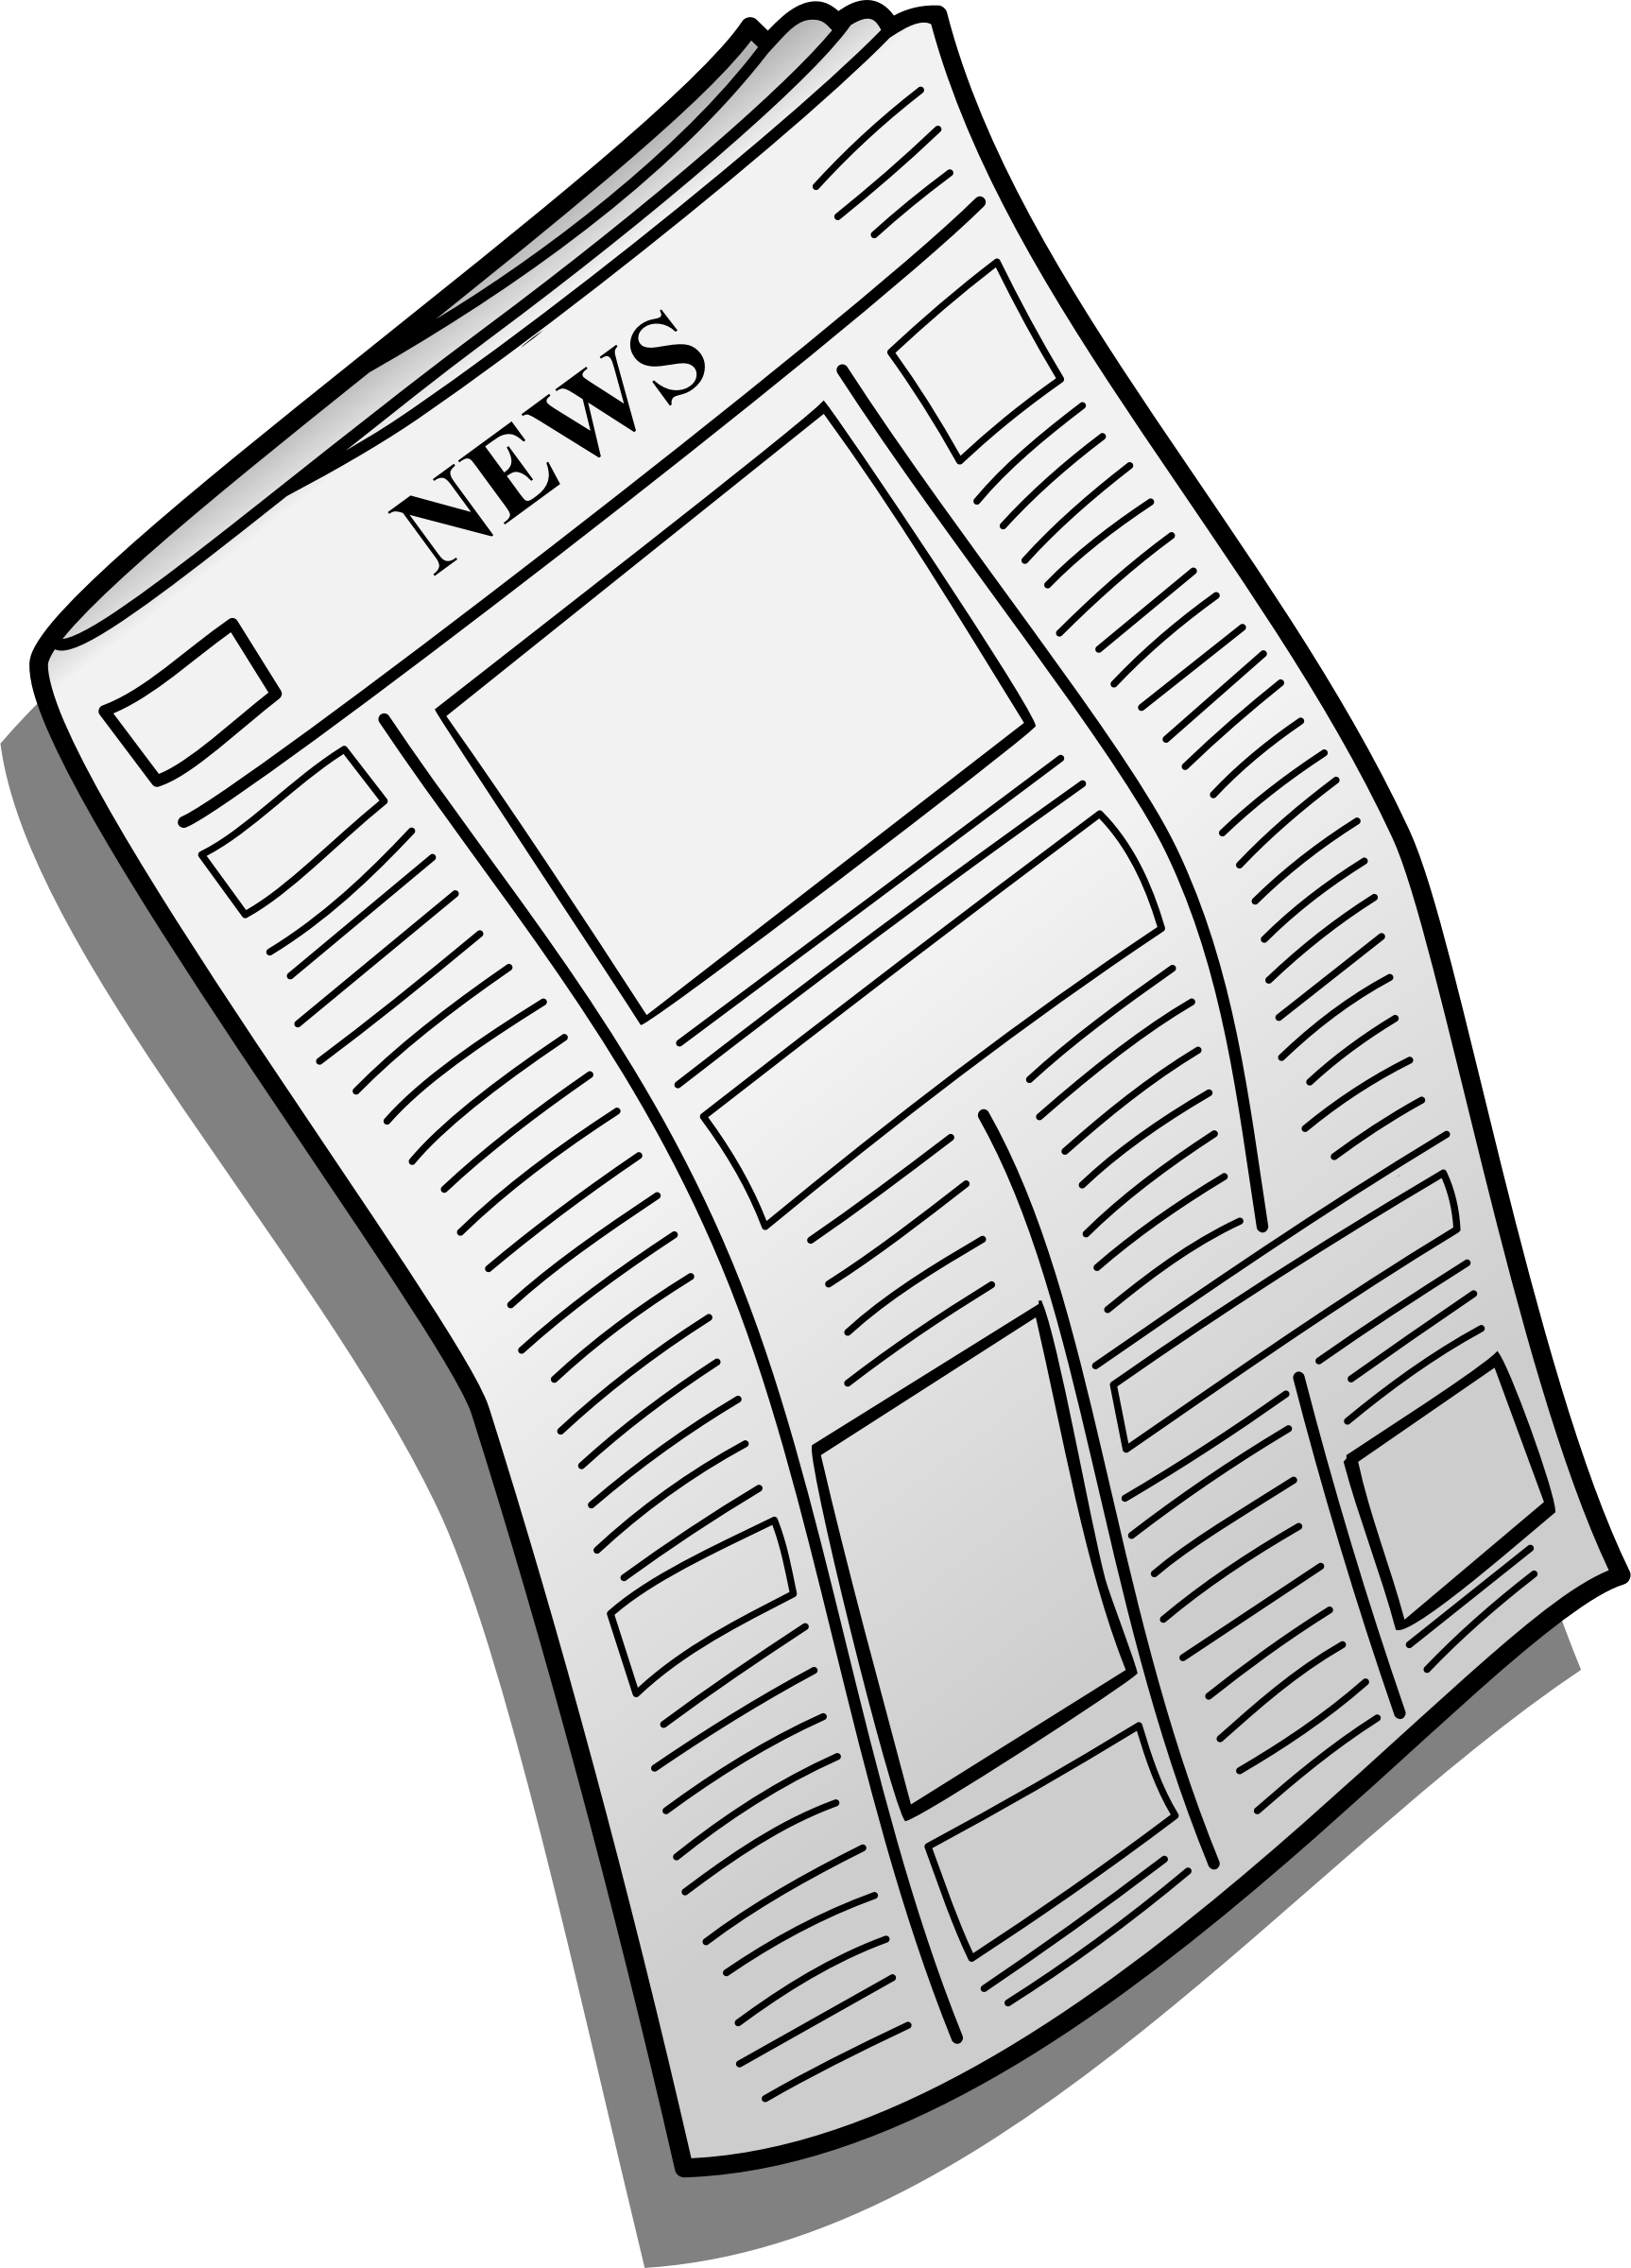 collection of transparent. Newspaper clipart seller